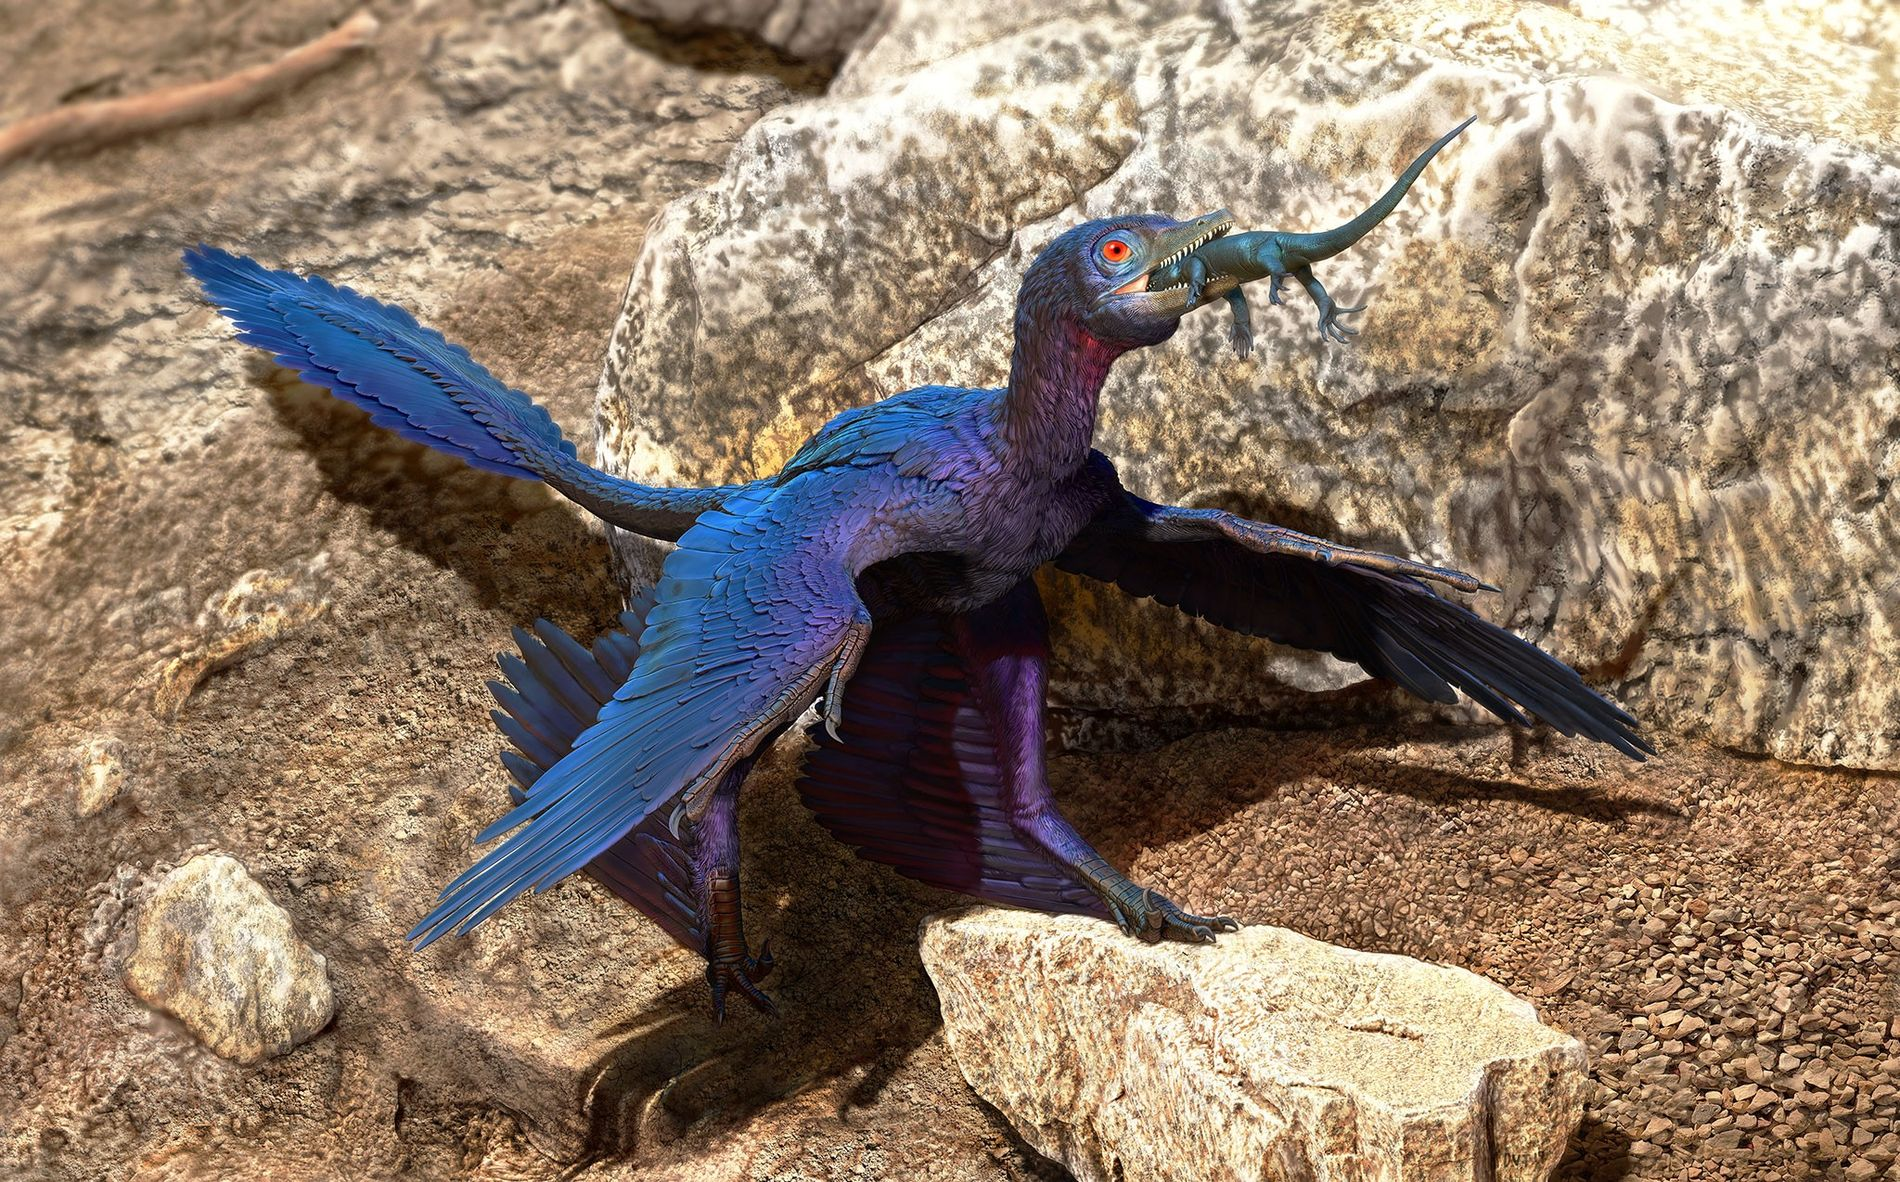 More than 120 million years ago in what is now northeastern China, a feathered dinosaur called ...